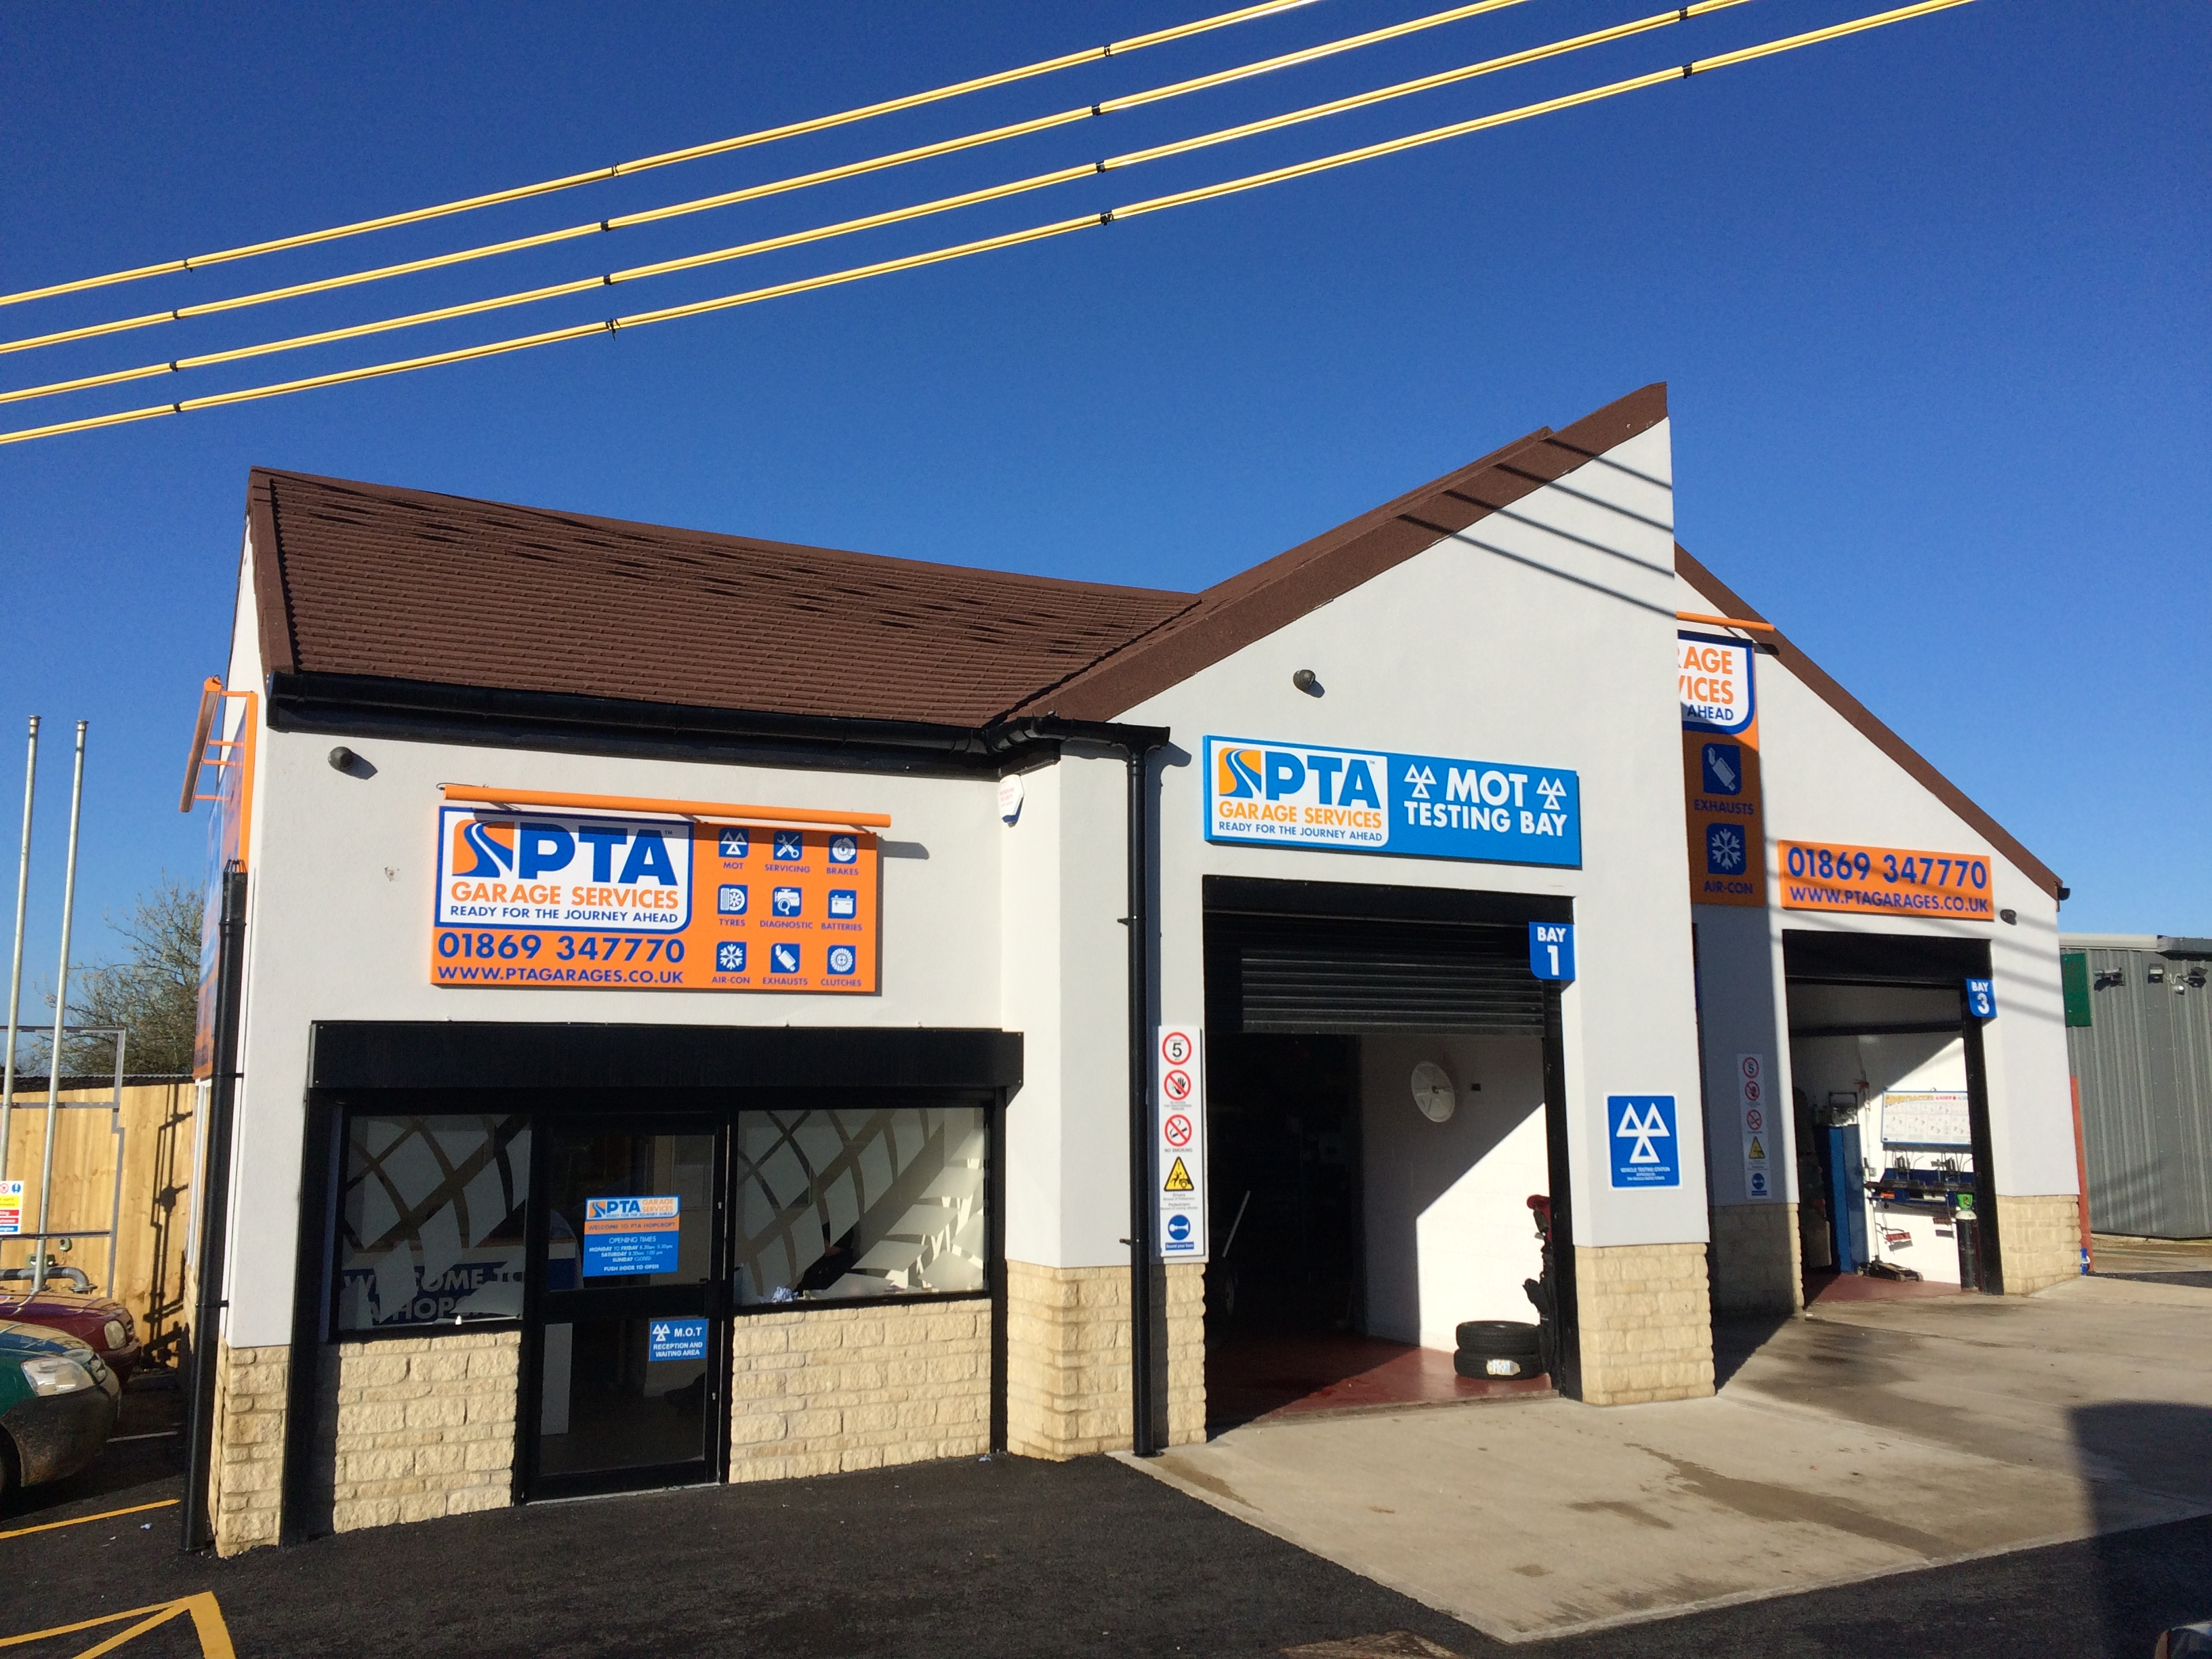 PTA Garage Services Hopcroft/Bicester provides a range of services including MOT testing, car servicing, tyres, brakes, batteries, exhausts, wheel alignment and more